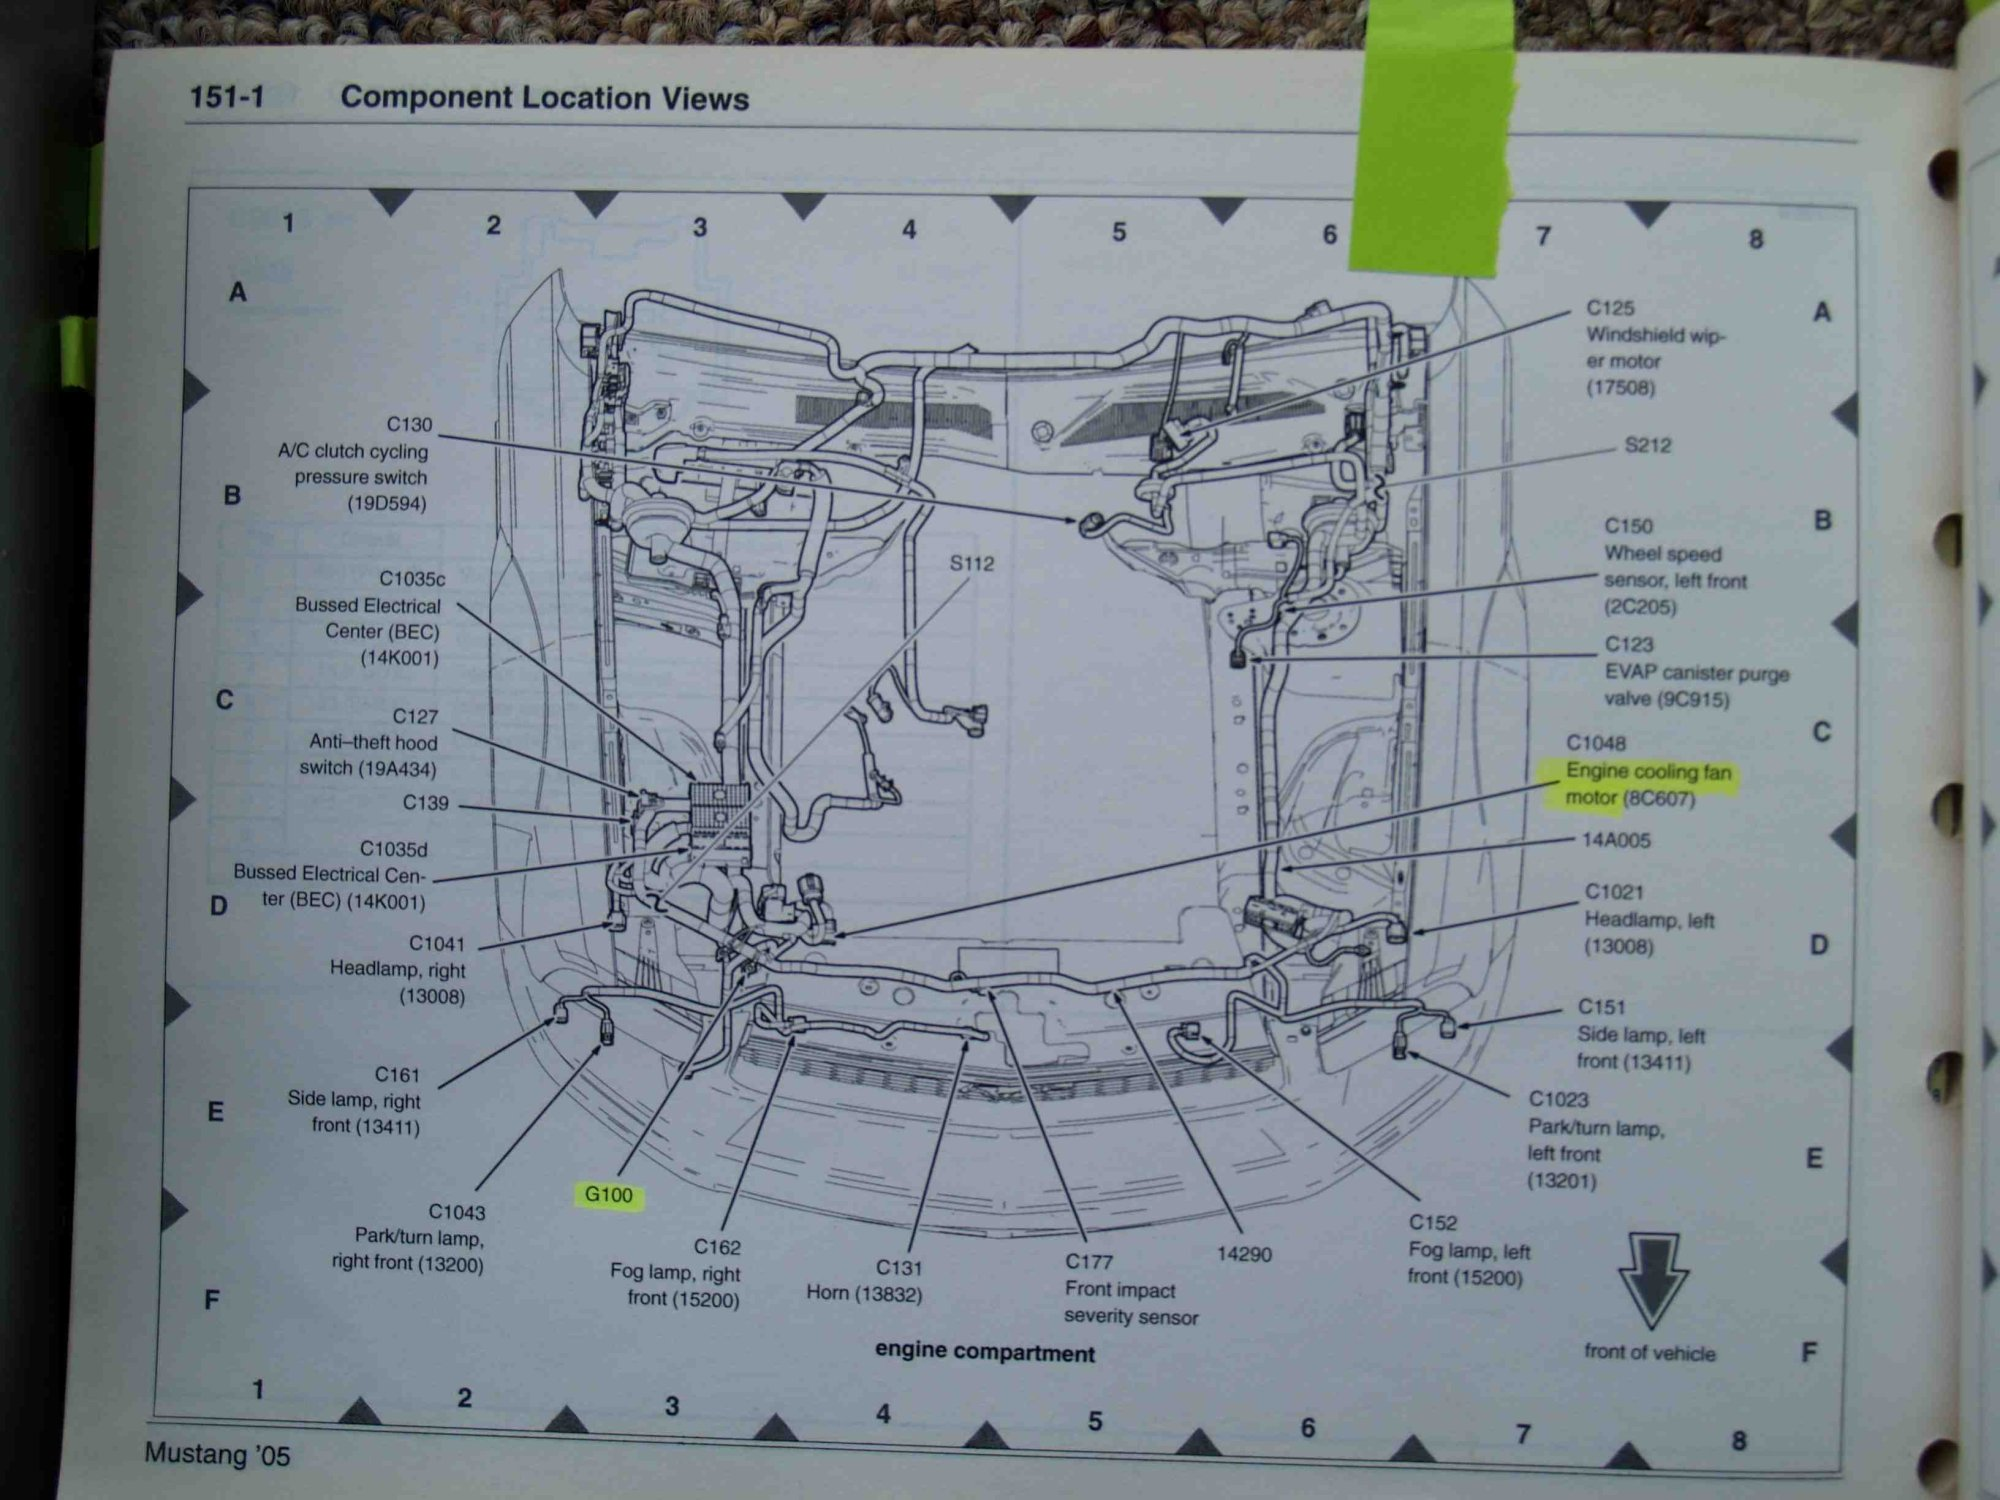 hight resolution of 2004 mustang headlight wiring diagram wiring diagram world 2004 mustang headlight wiring diagram